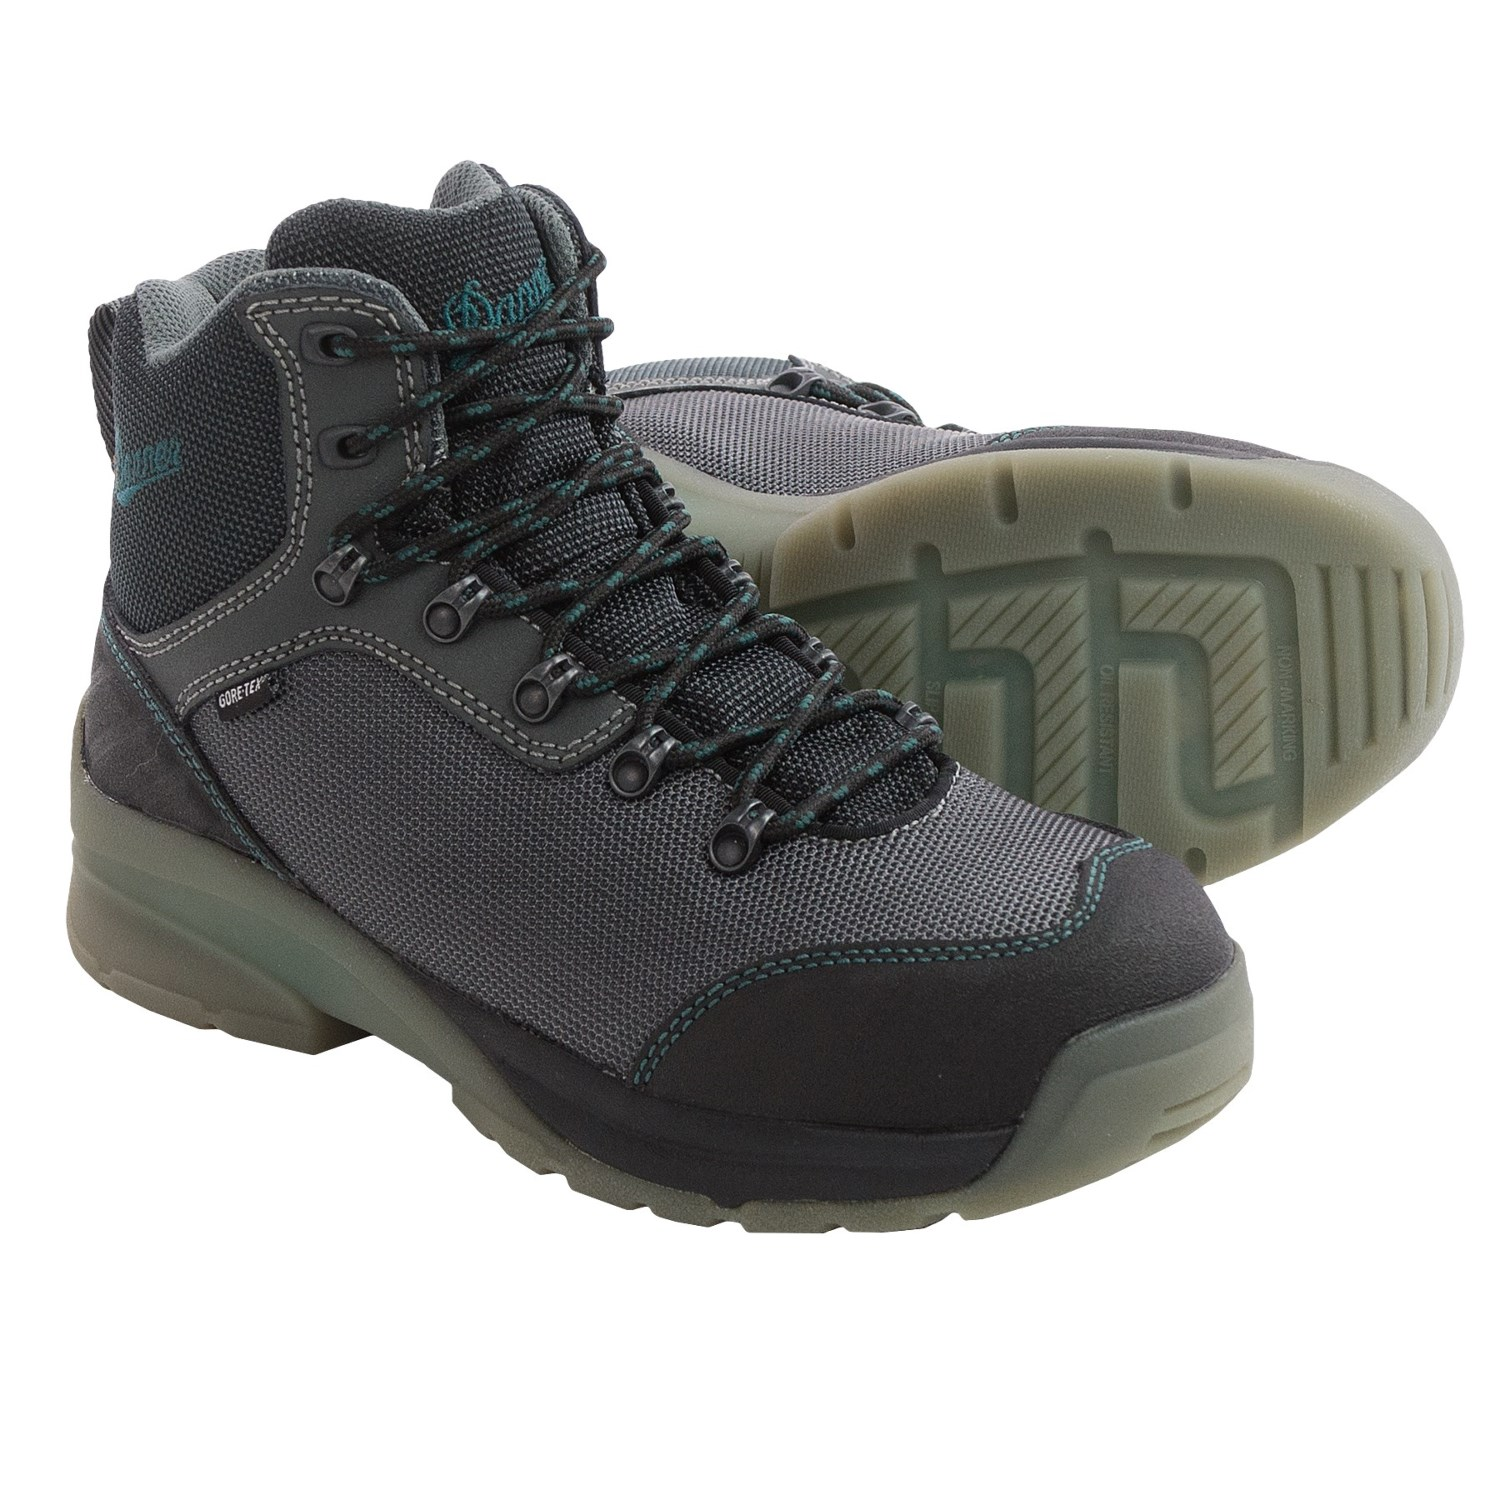 Wonderful Danner 26027 - Danner Marine Hot Military Boots Closeout At Dungarees